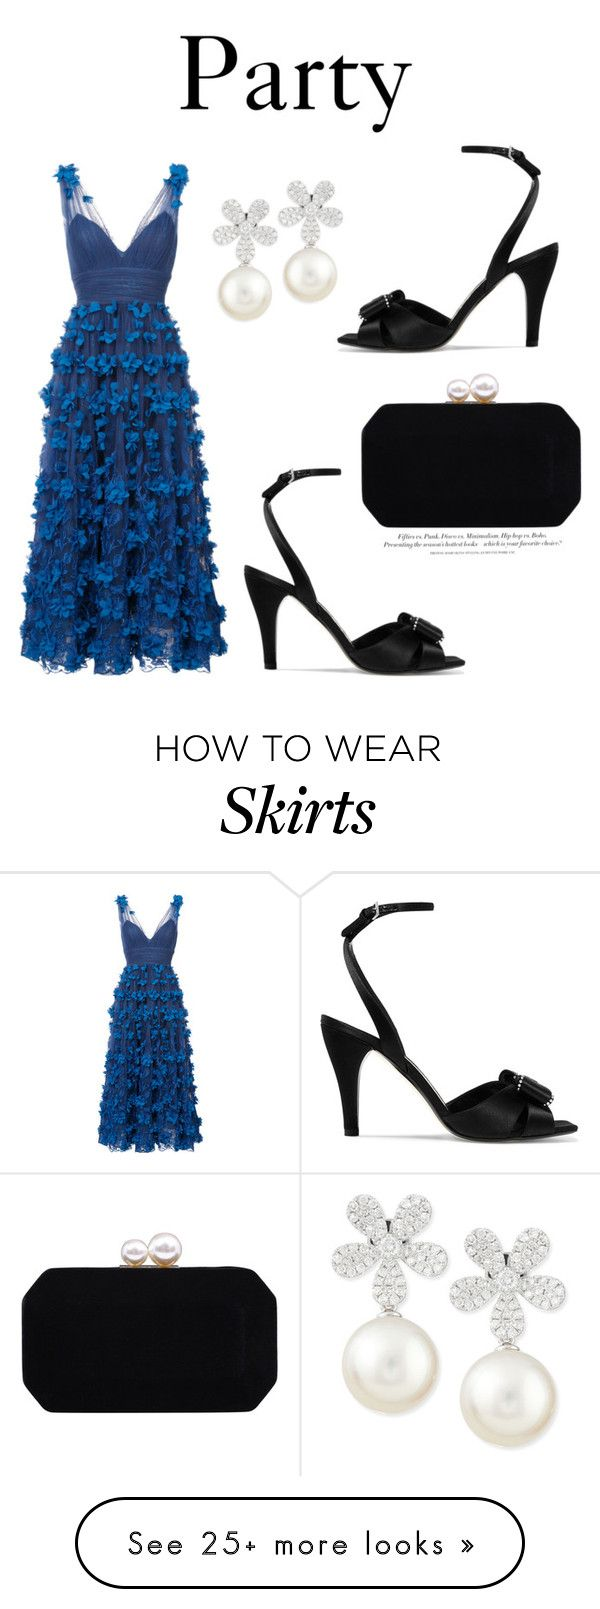 """""""656"""" by meldiana on Polyvore featuring Notte by Marchesa, Loewe, Carvela, Belpearl and H&M"""